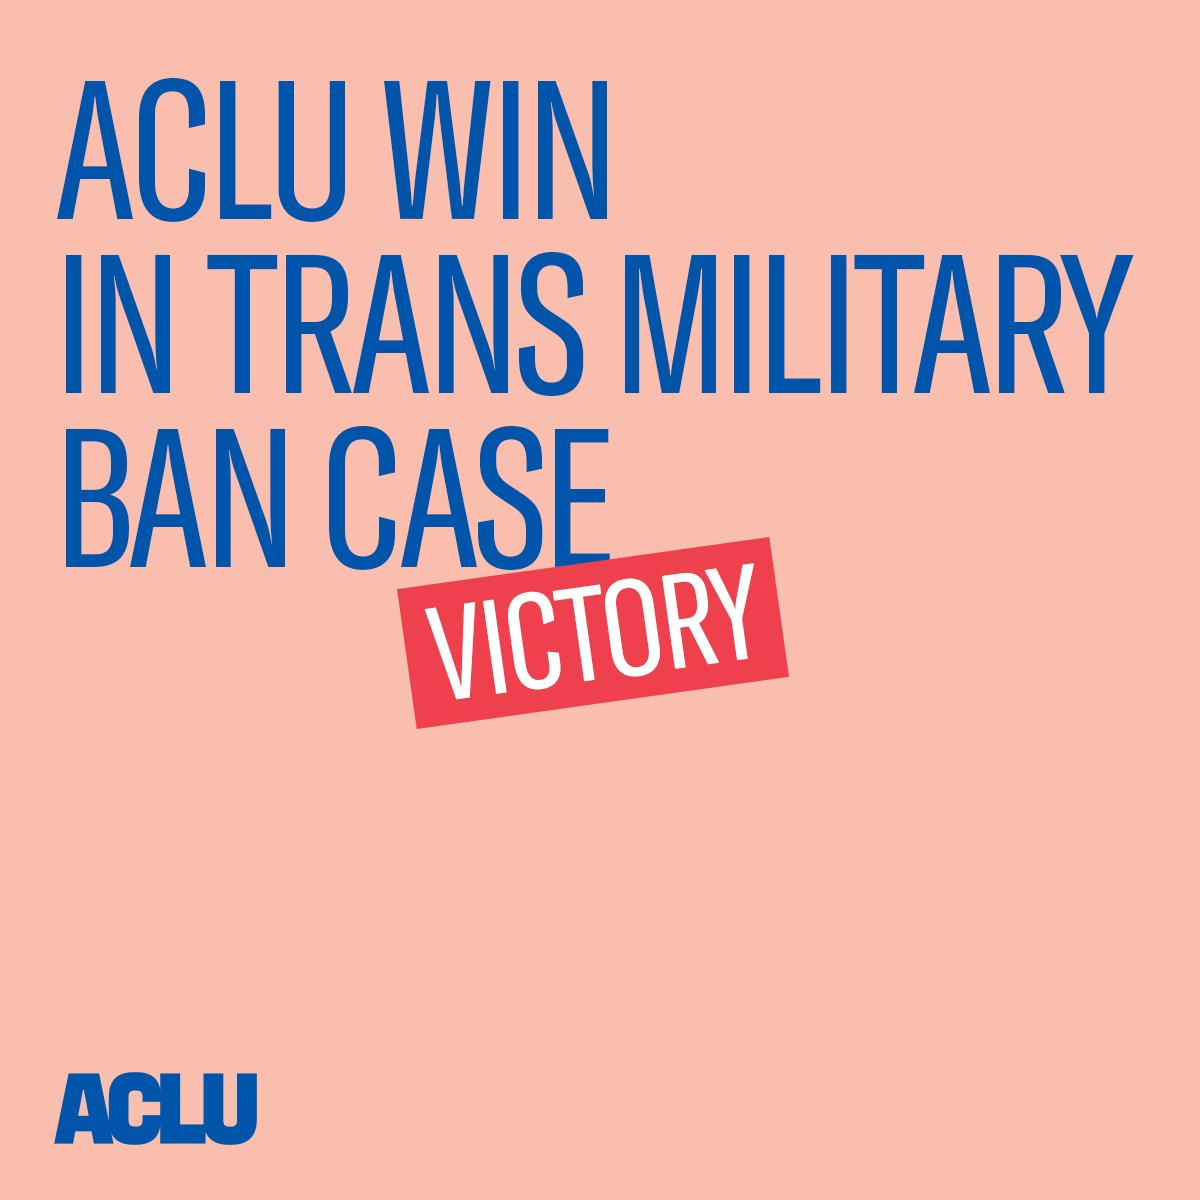 BREAKING: A federal court has ordered a complete halt to implementation of Trump's unconstitutional and discriminatory transgender military ban. #TransMilitaryBan.